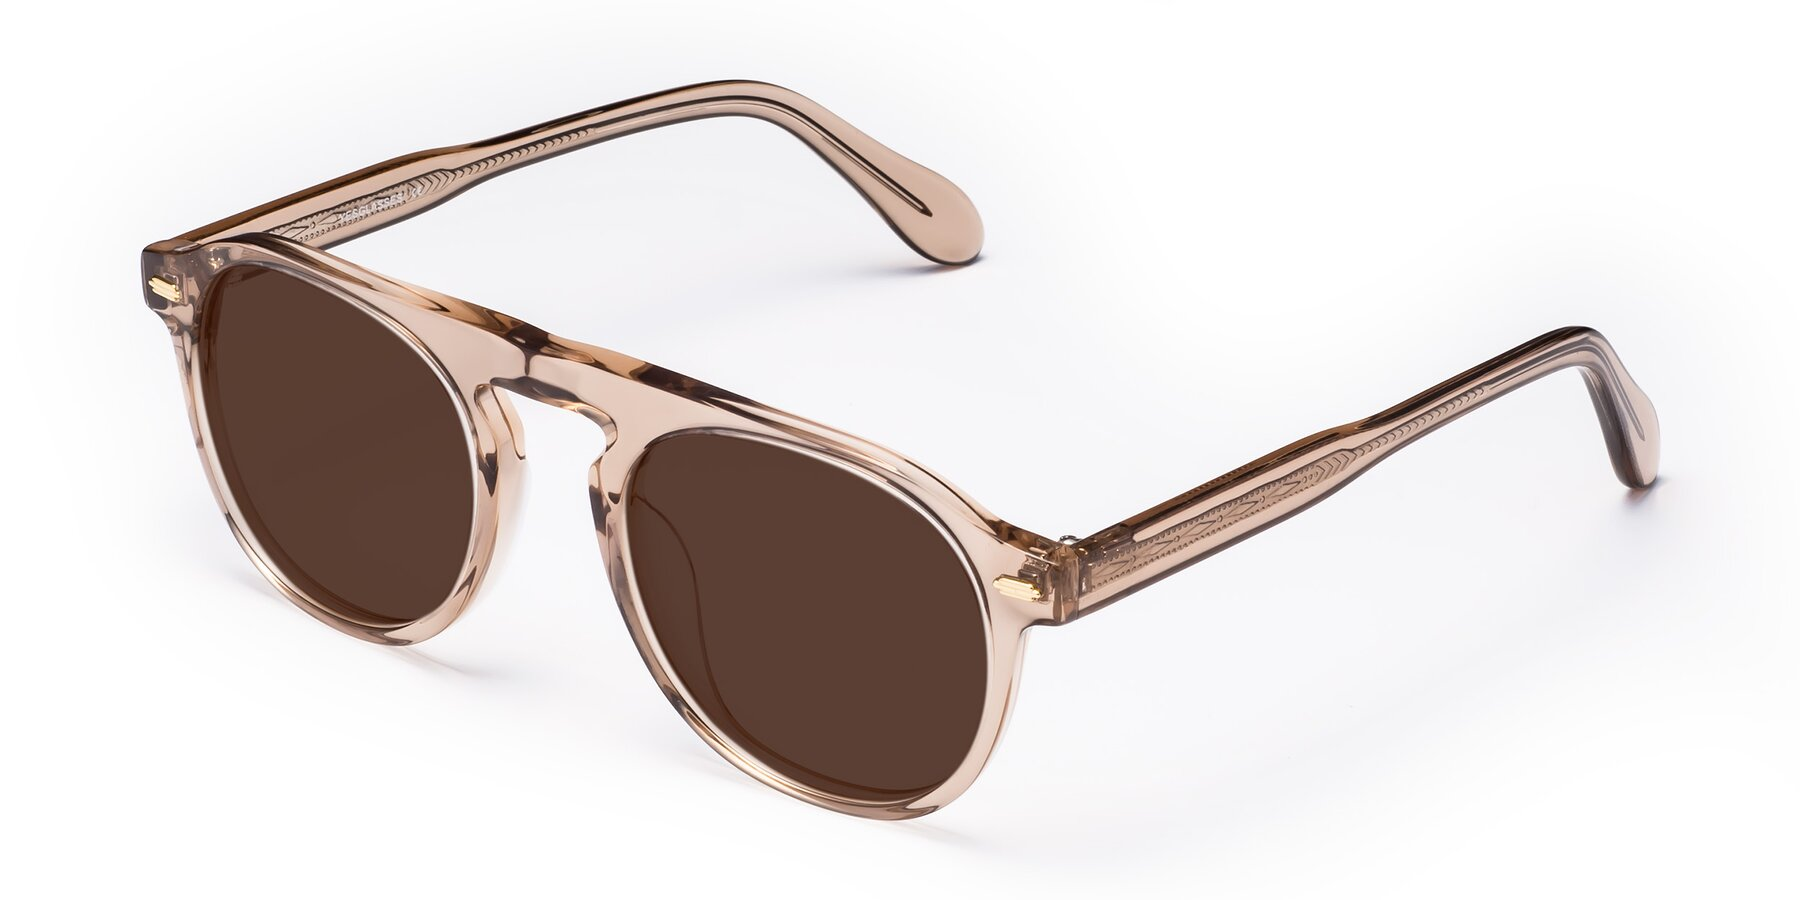 Angle of Mufasa in light Brown with Brown Tinted Lenses